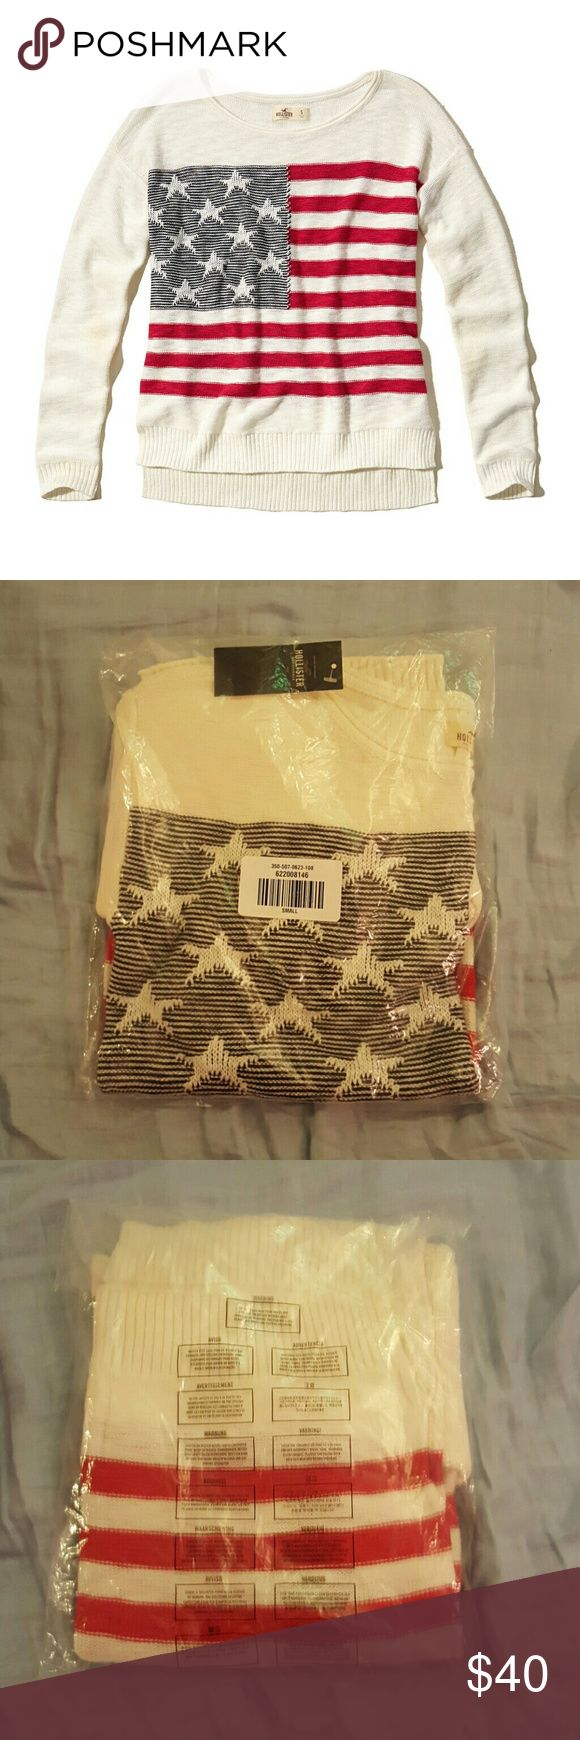 Hollister size small American flag sweater Brand new with tags, still in plastic bag (ordered from online). Size small. Hollister Sweaters Crew & Scoop Necks